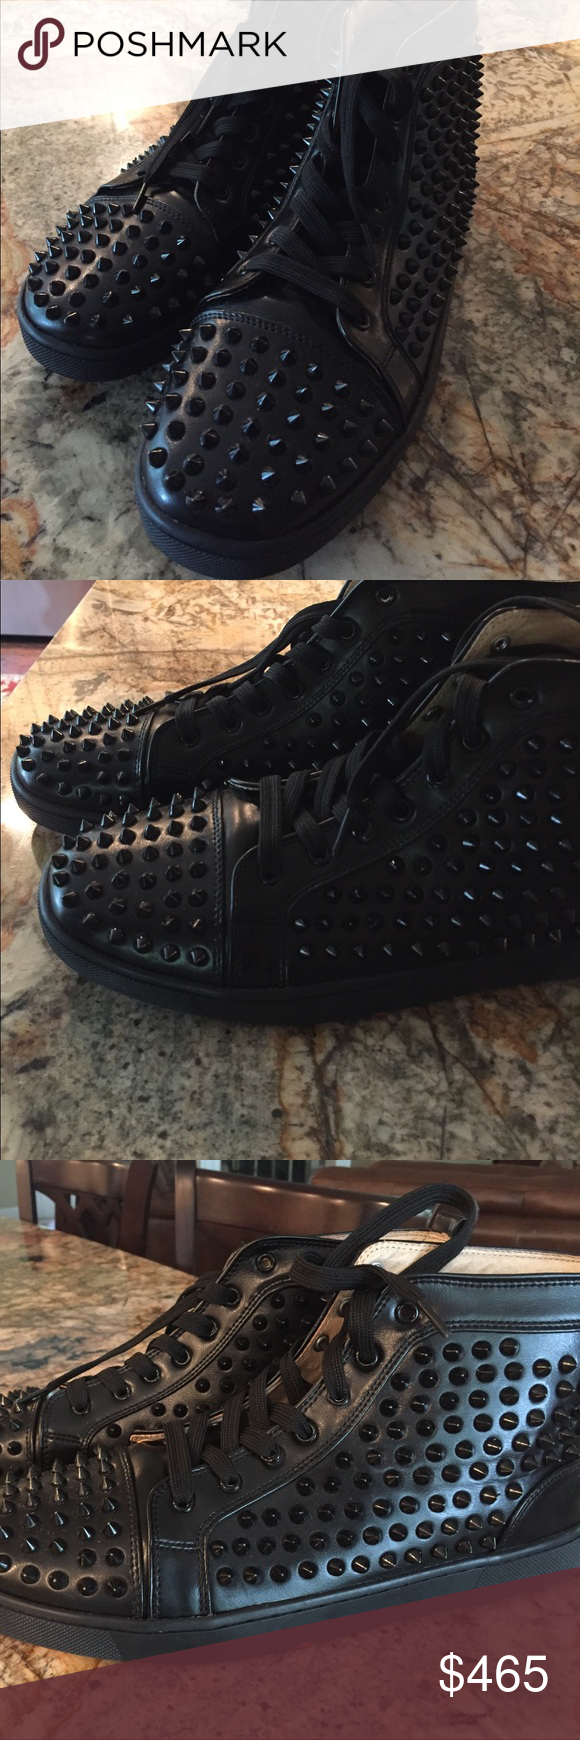 "black leather studded Christian Louboutin boots Awesome black leather Christian Louboutin boots, authentic, PRICED RIGHT!!, no studs missing, signature red leather soles, not perfect condition but very very good condition ( see pics), size 12, measures 12 "" on the soles , Comes from a smoke free home. Christian Louboutin Shoes Boots"